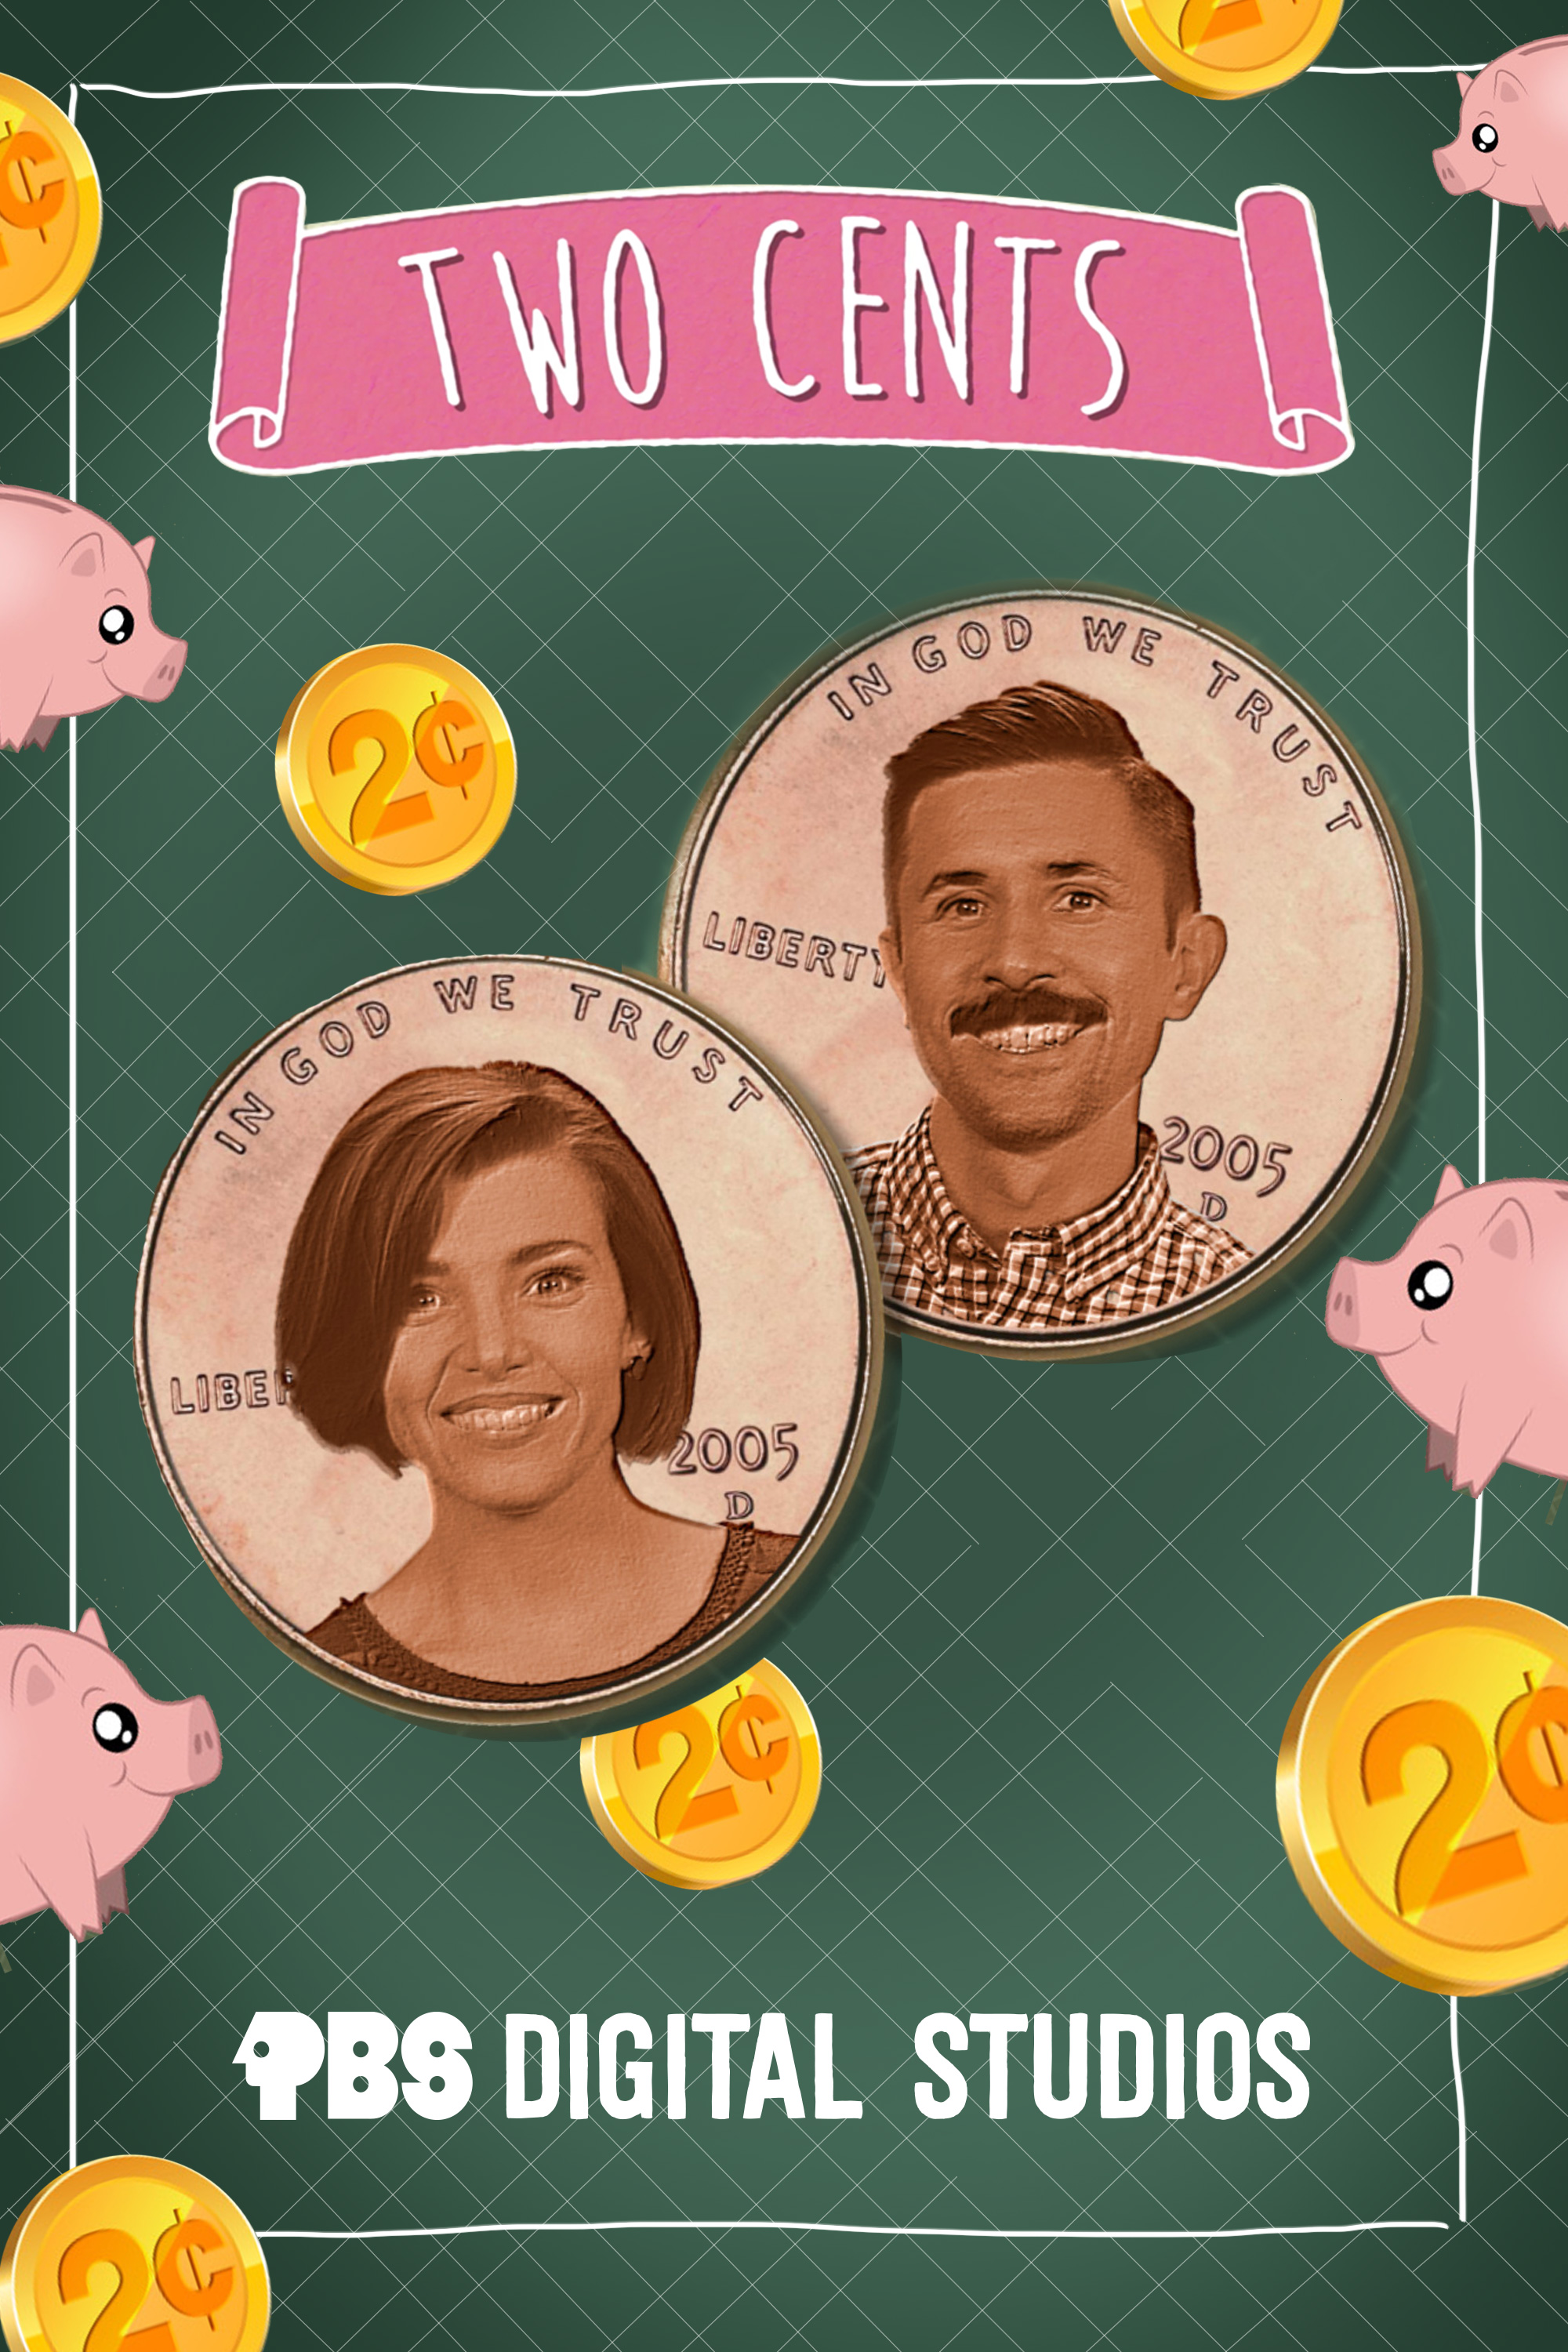 Two Cents is an educational show about personal finance. The show is created and written by Philip Olson, Julia Lorenz-Olson, Andrew Matthews, and Katie Graham.